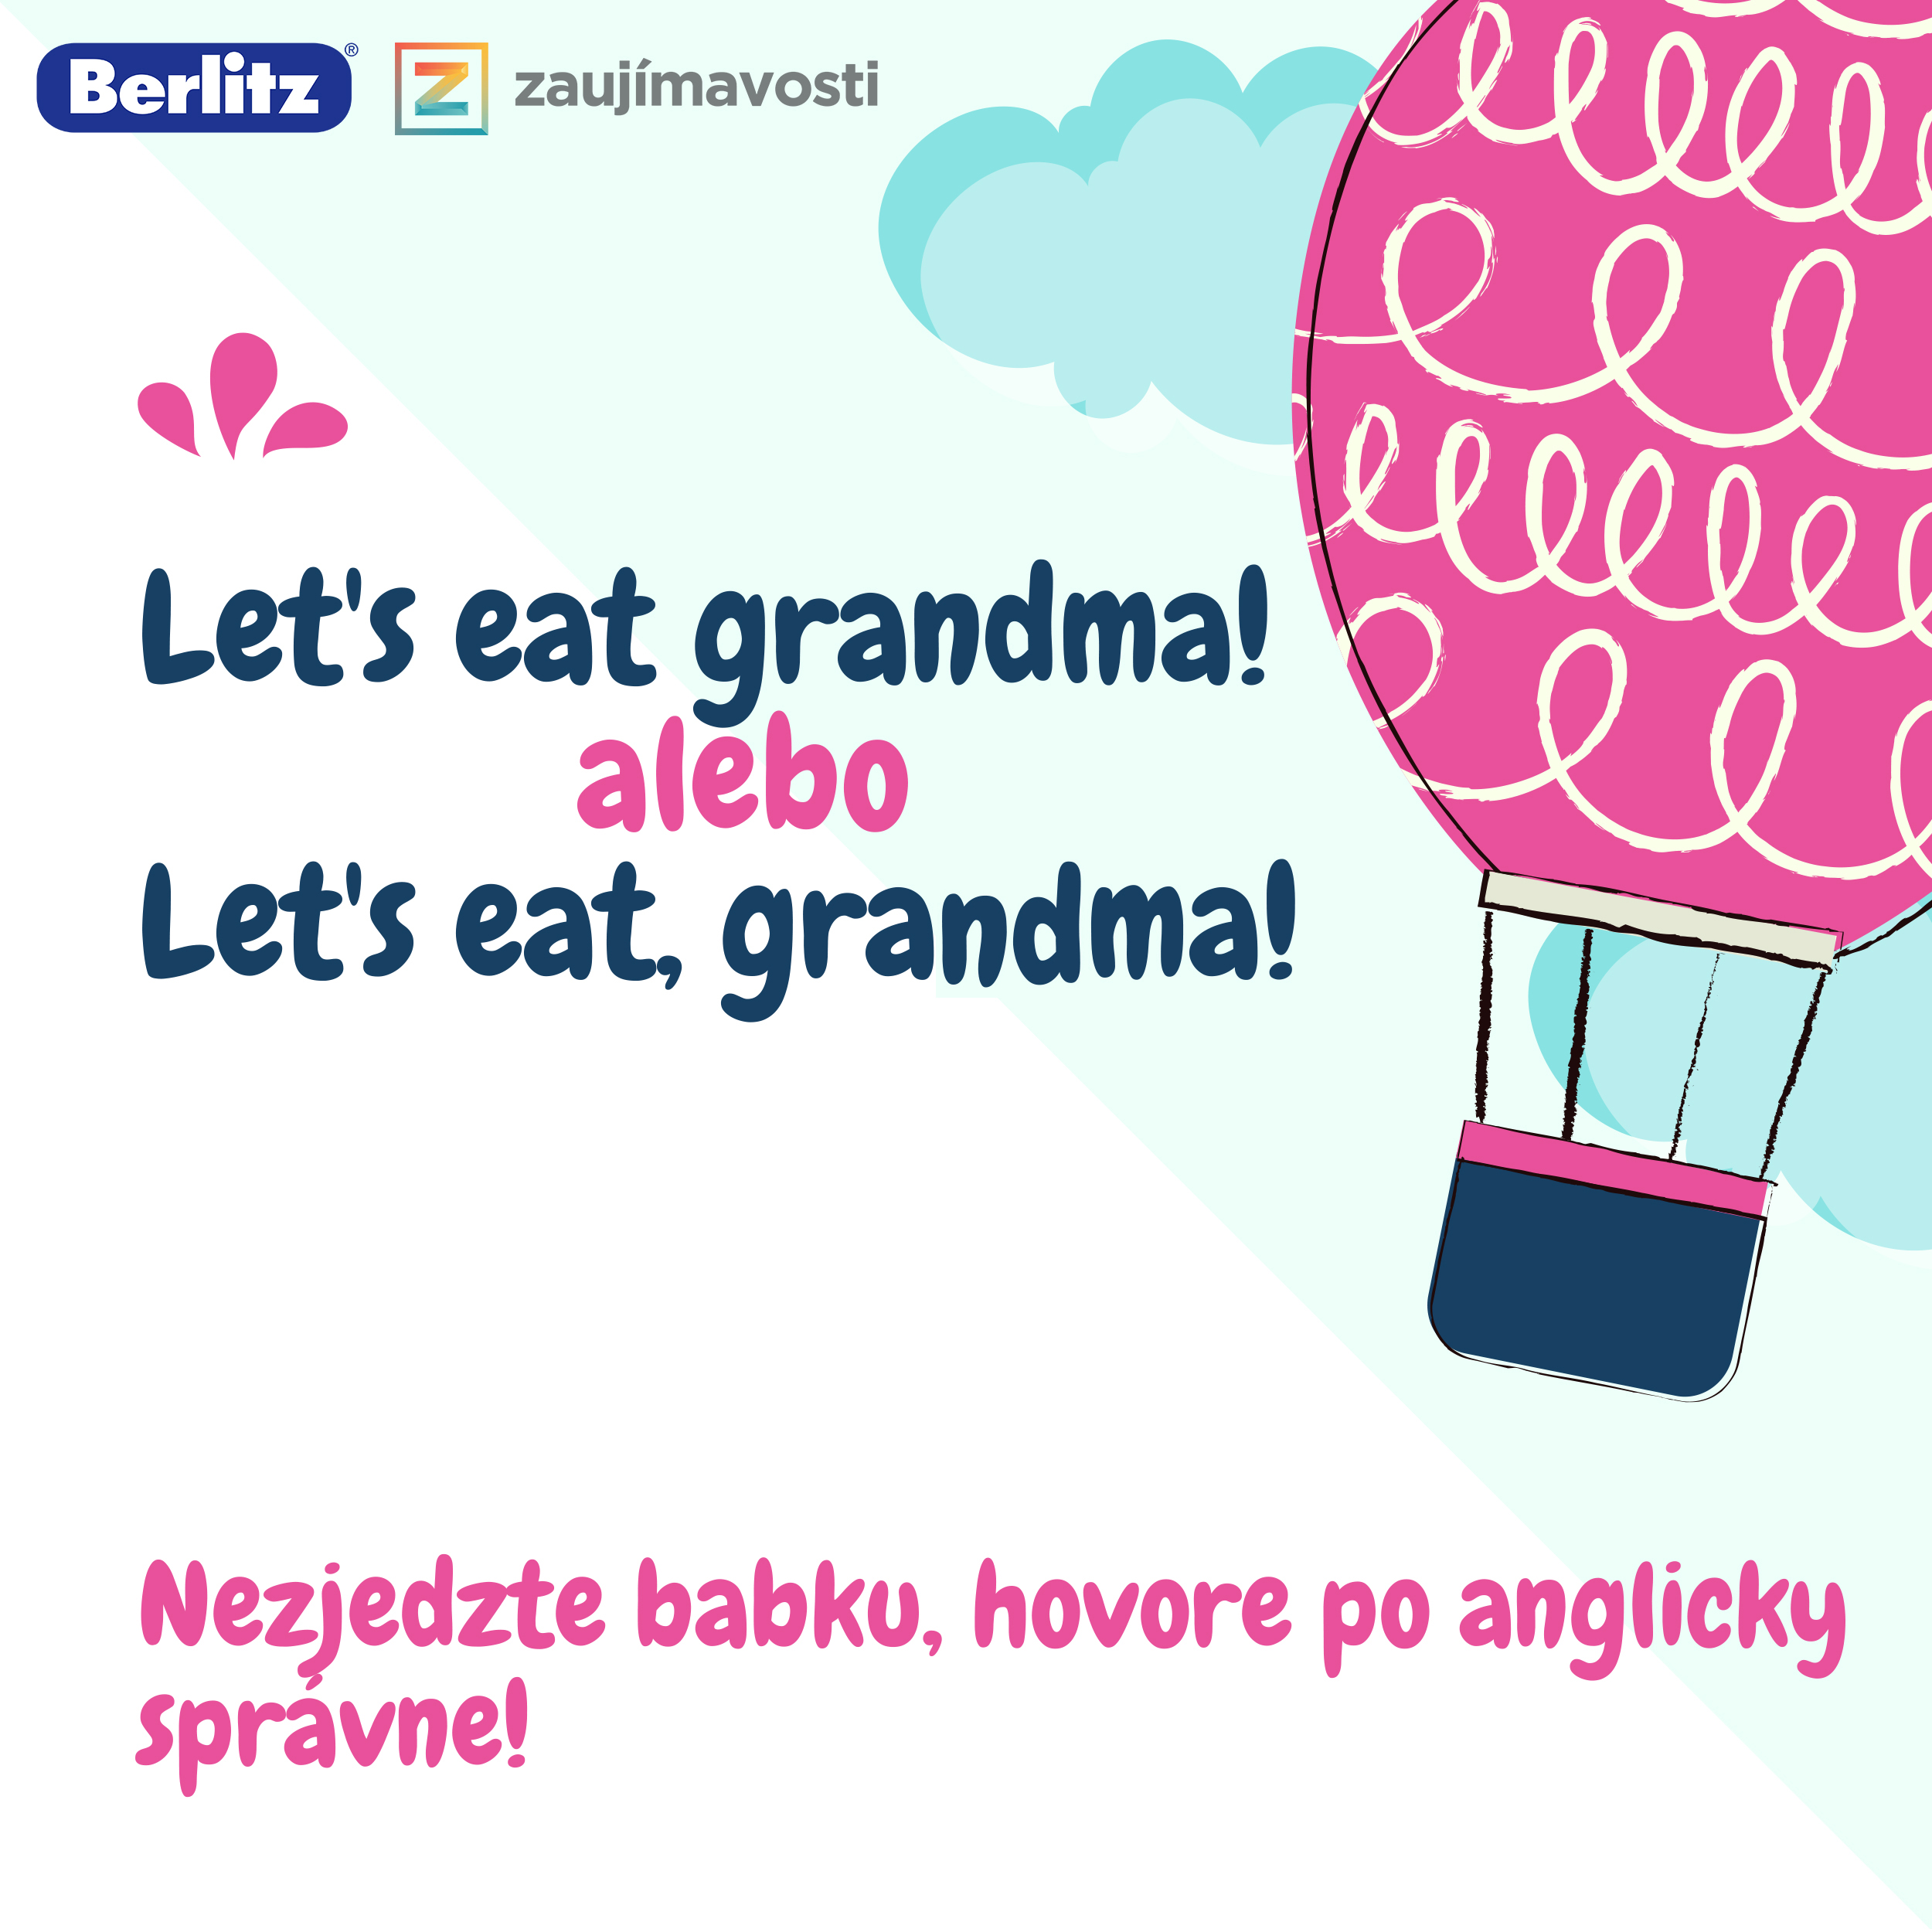 Let's eat grandma aleboLet's eat, gradnma